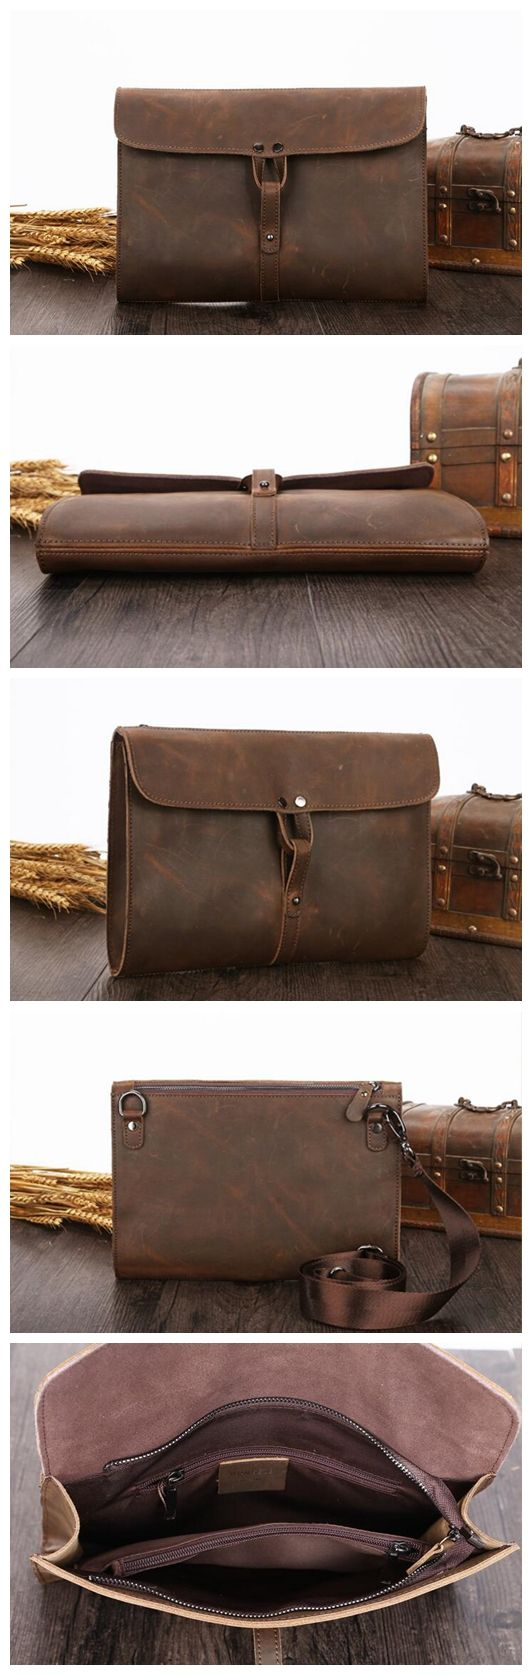 25  Best Ideas about Leather Bags Handmade on Pinterest | Leather ...